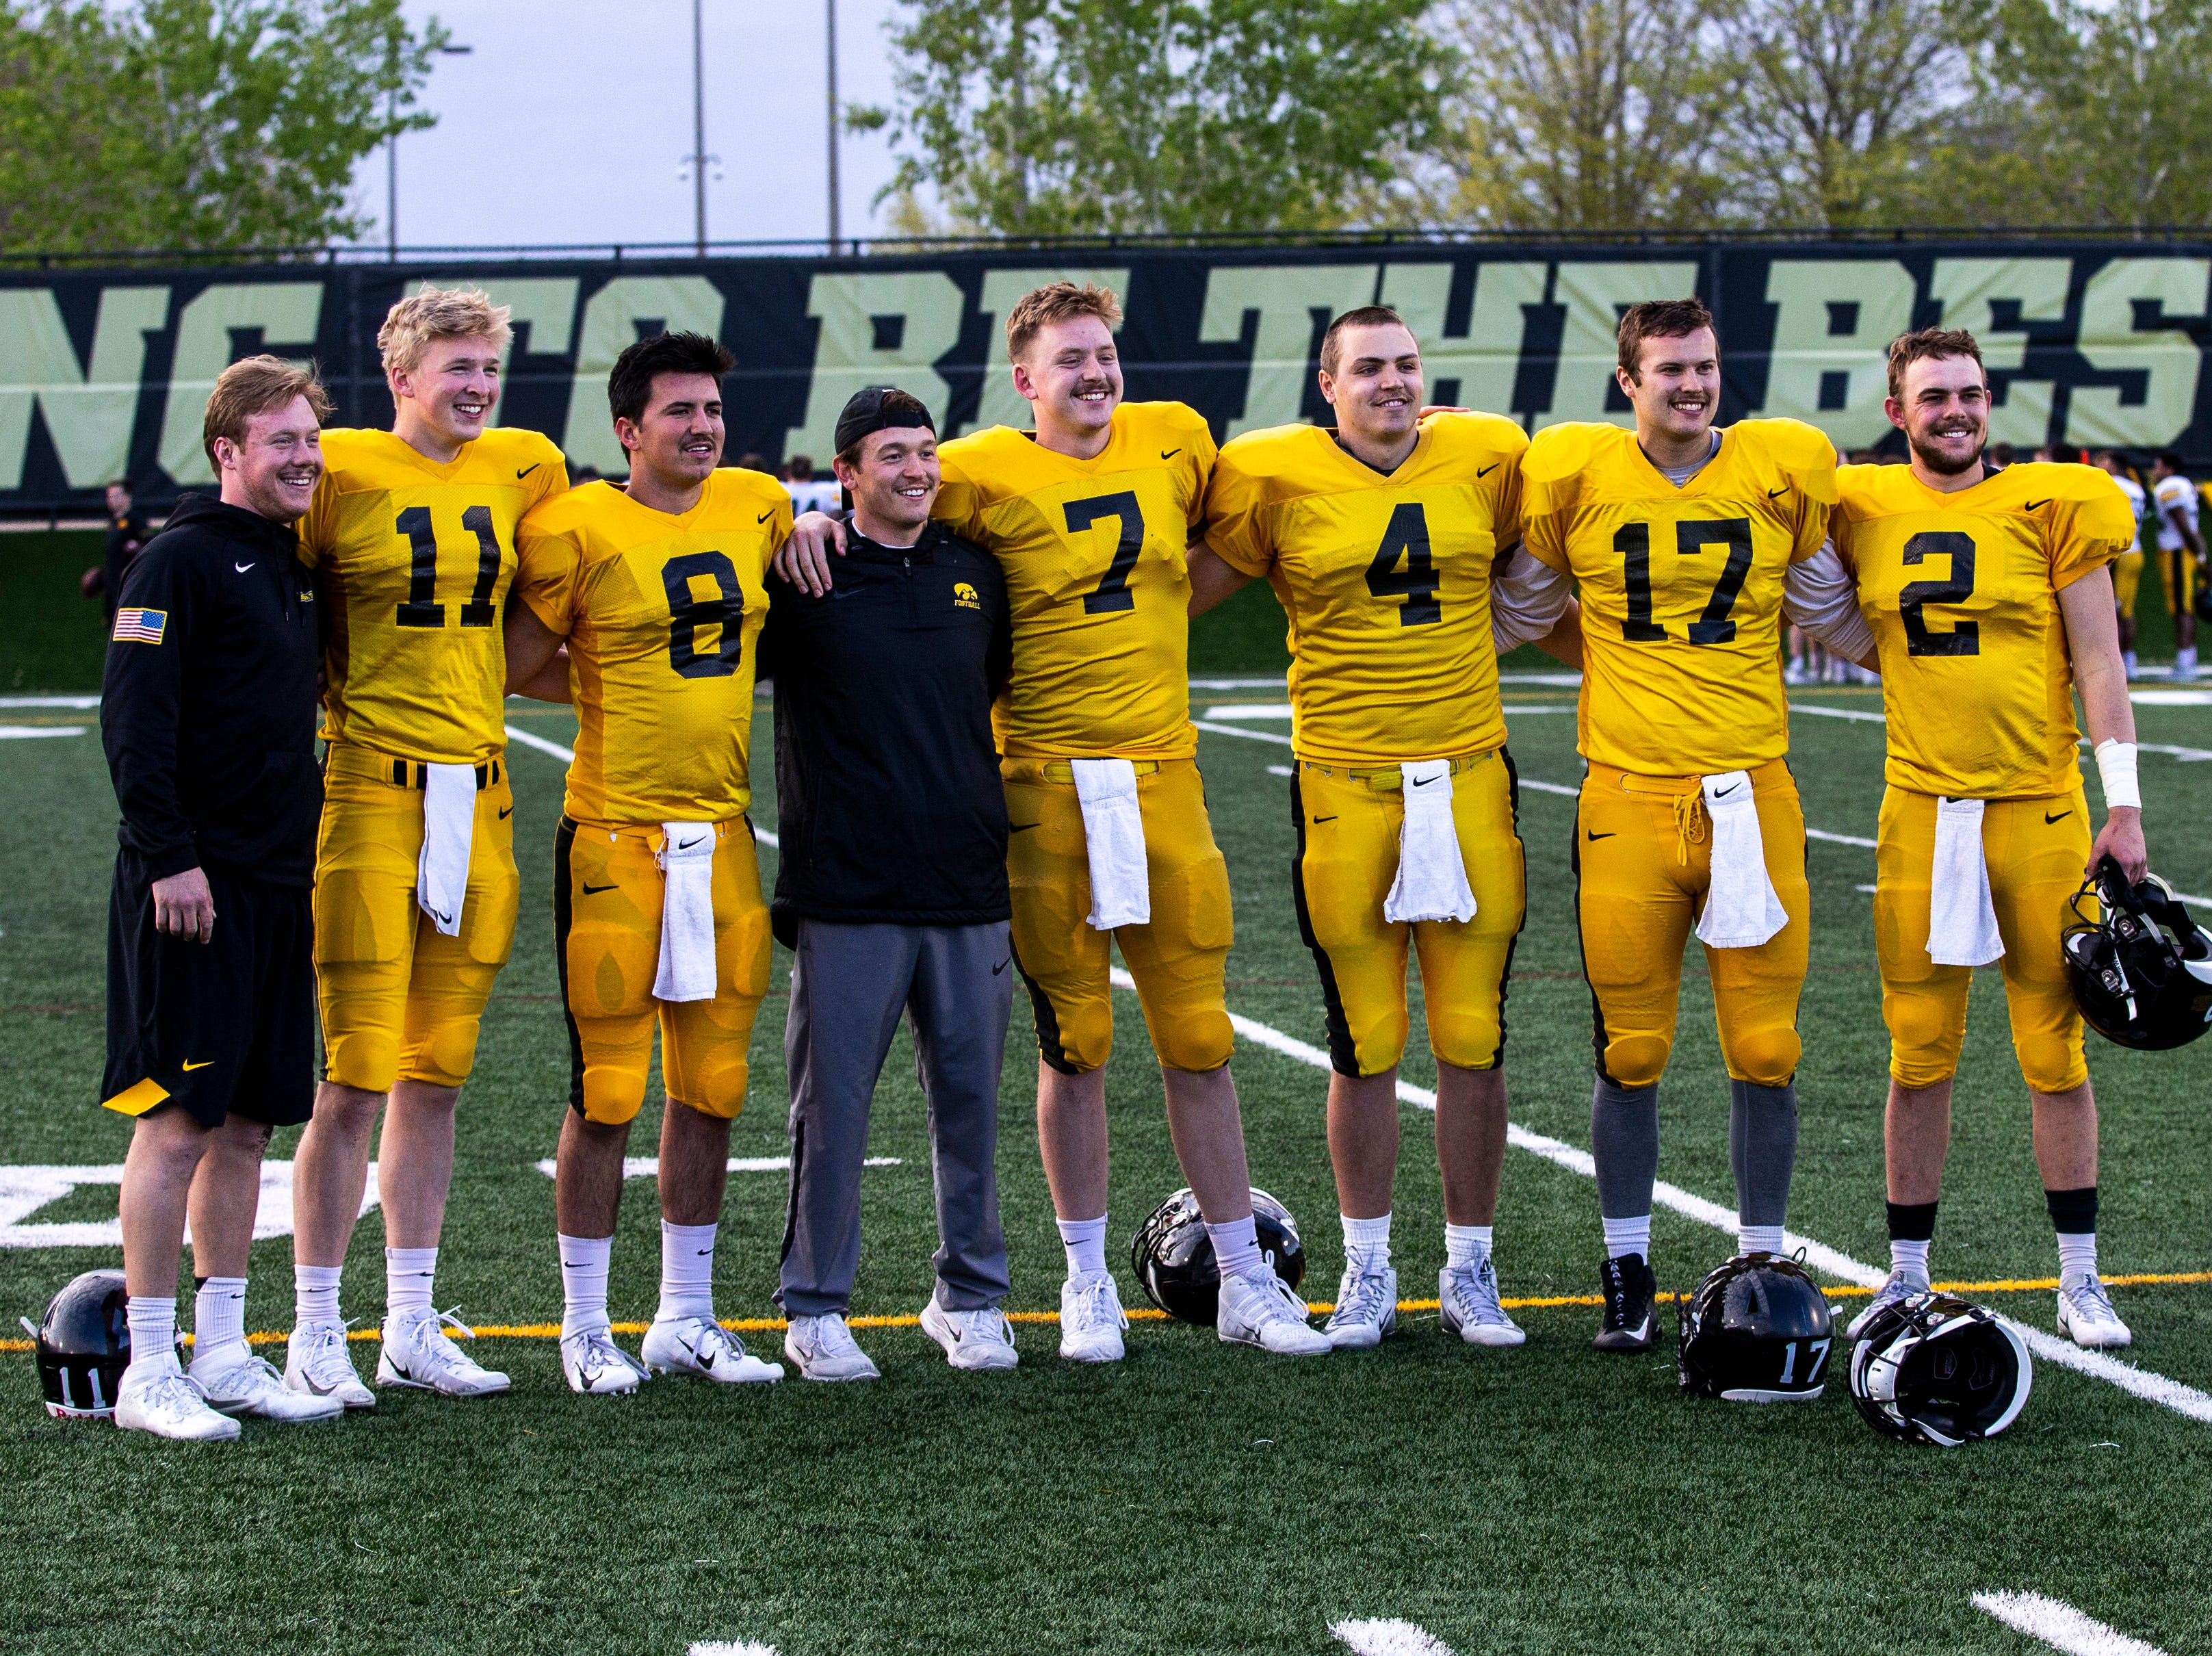 Iowa quarterbacks pose for a photo after the final spring football practice, Friday, April 26, 2019, at the University of Iowa outdoor practice facility in Iowa City, Iowa.